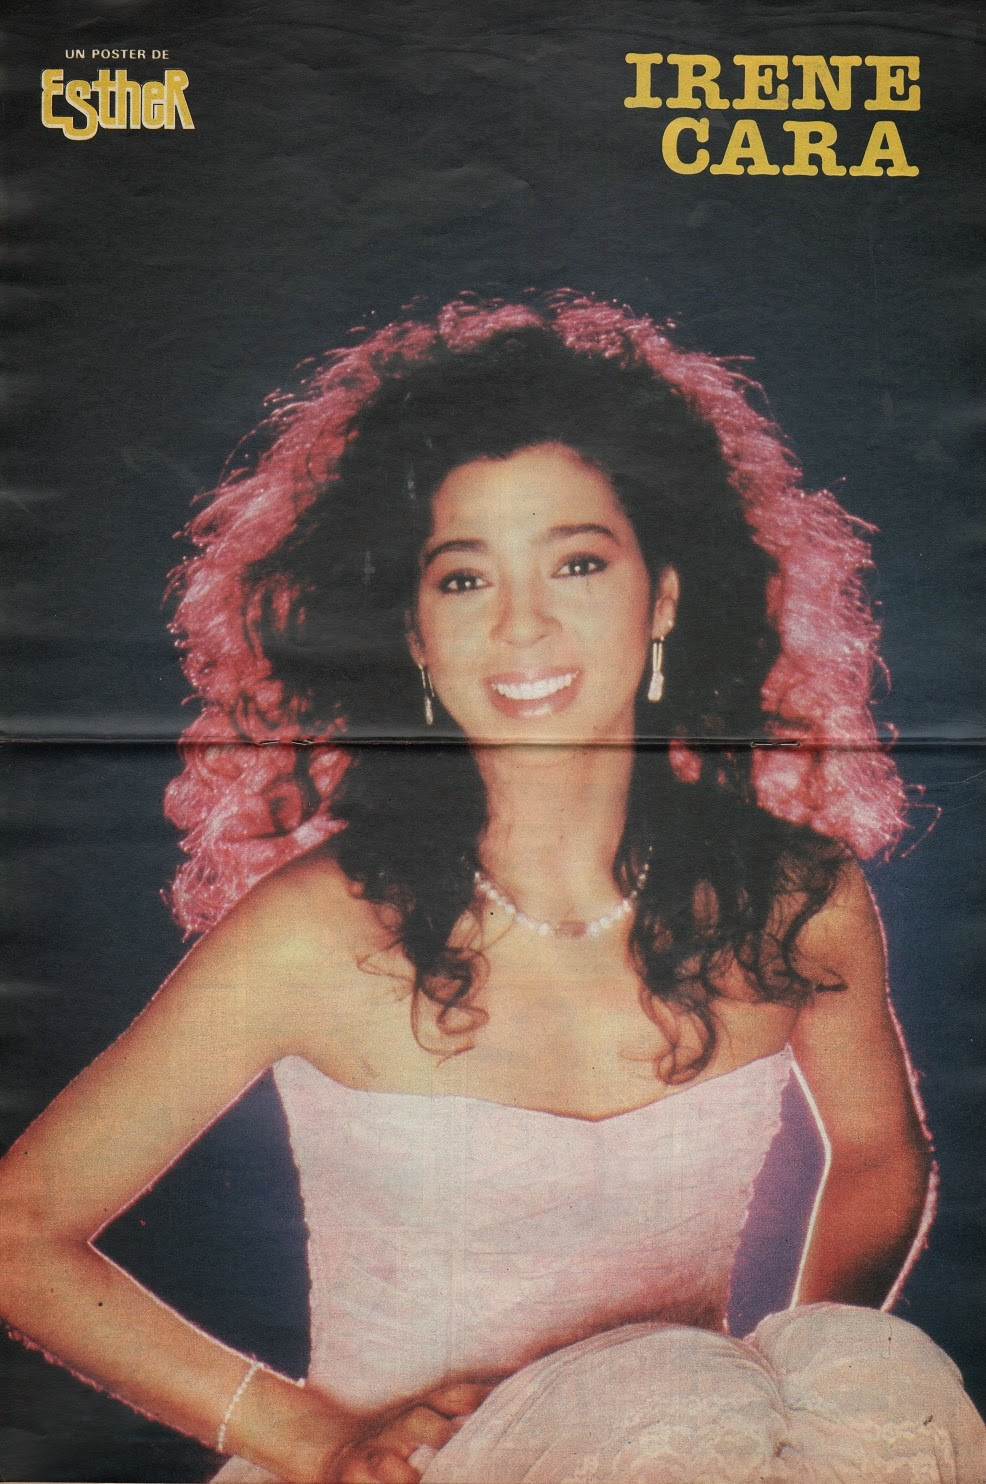 Kids From Fame Media: Irene Cara Spanish Esther Poster 1983